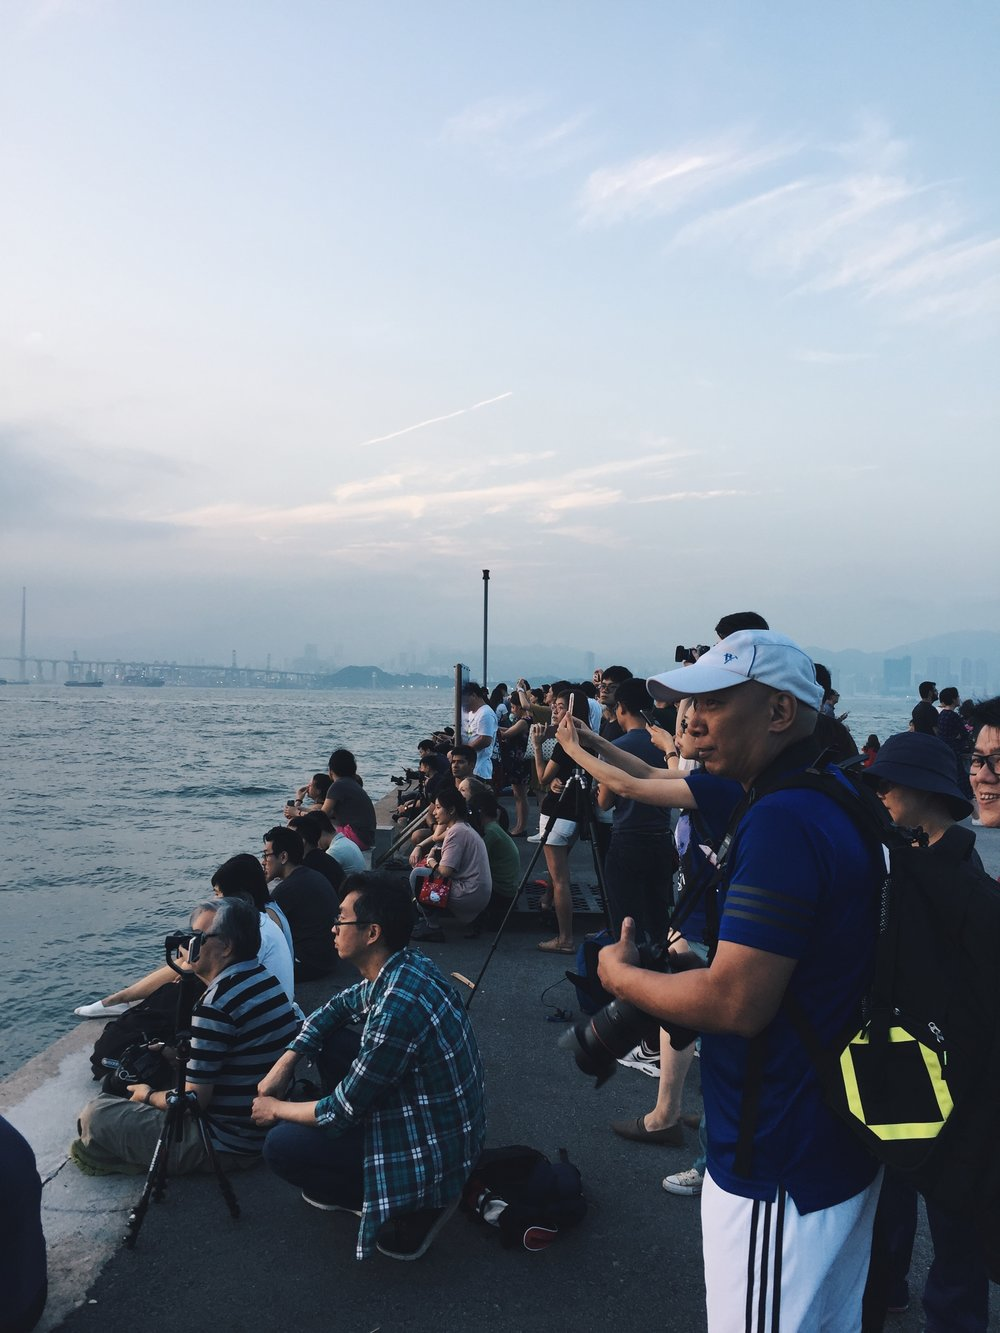 People taking pictures at Instagram Pier